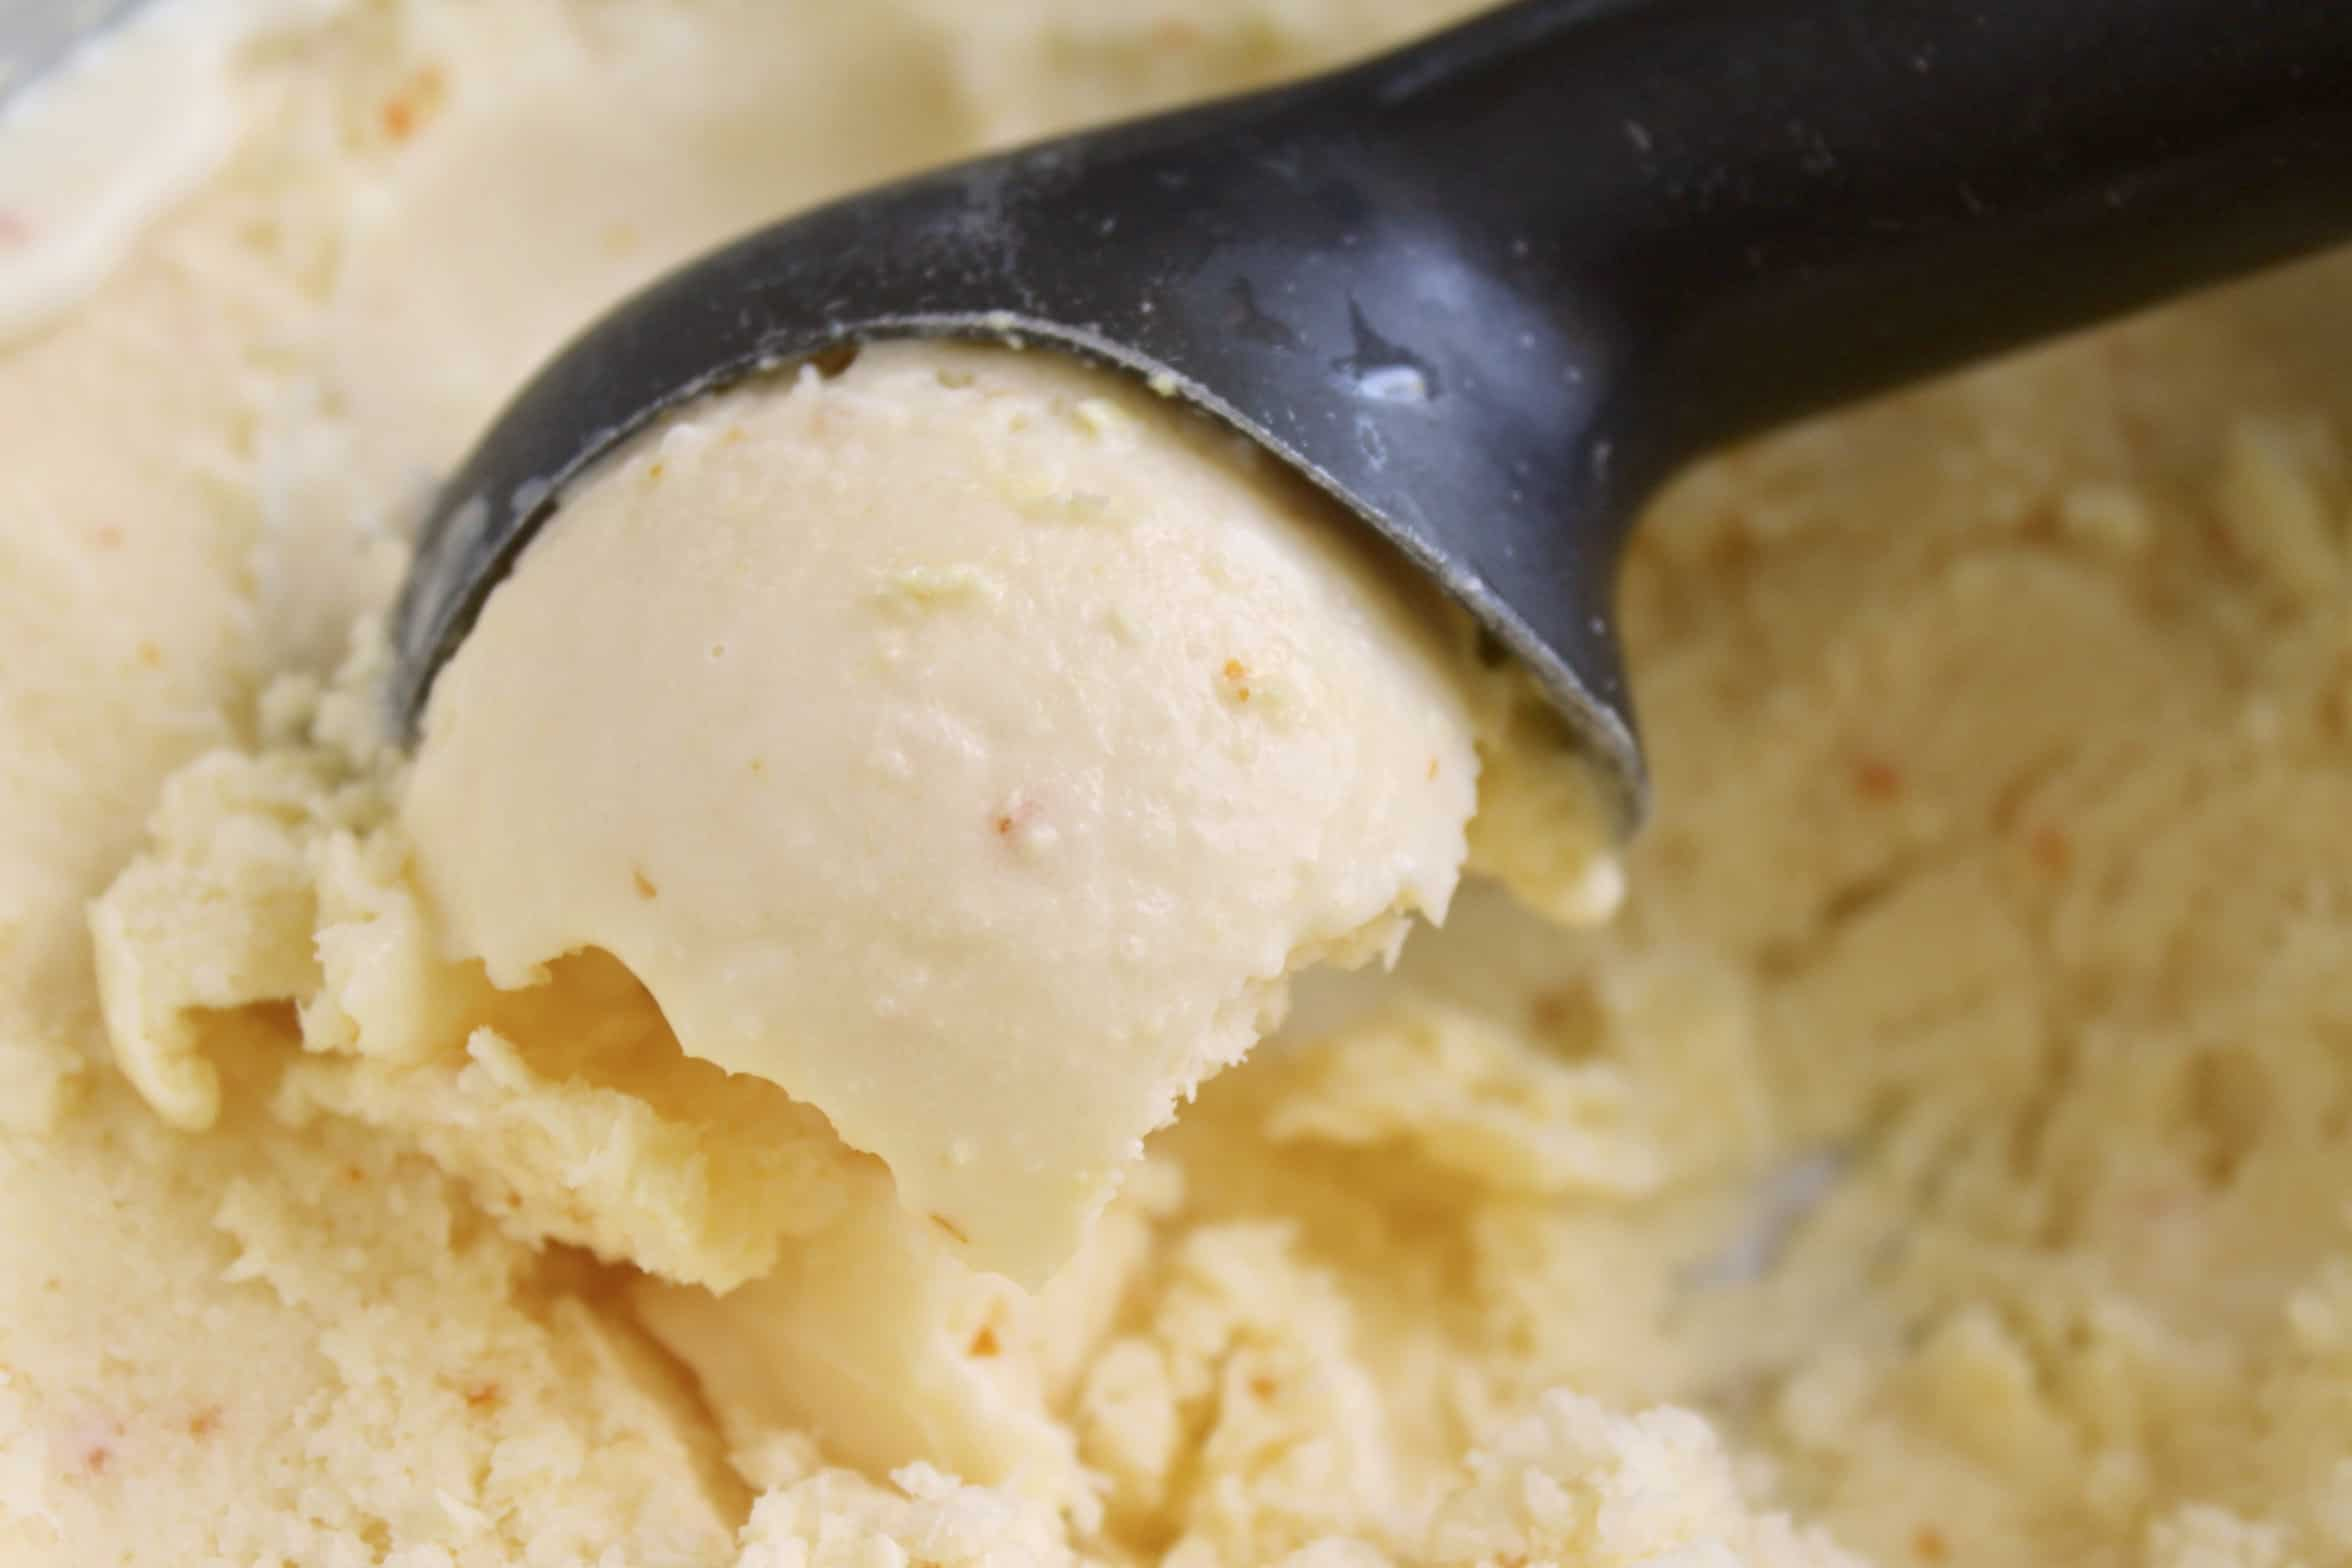 using an ice cream scoop to serve ice cream